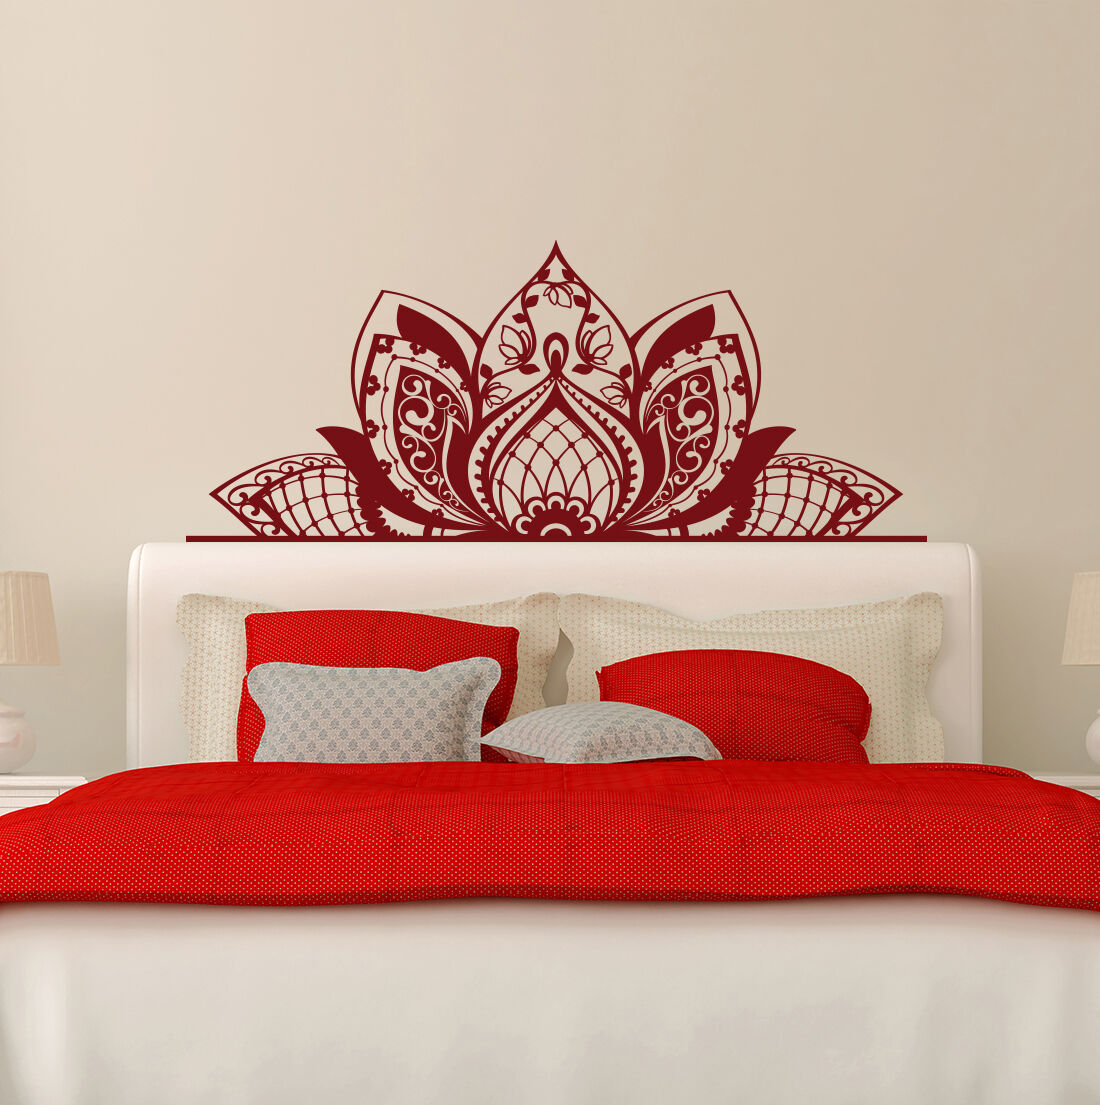 MANDALA Decorate The BEDS Wall Decal Lotus Decal Boho Decor HEADBOARDS FD204